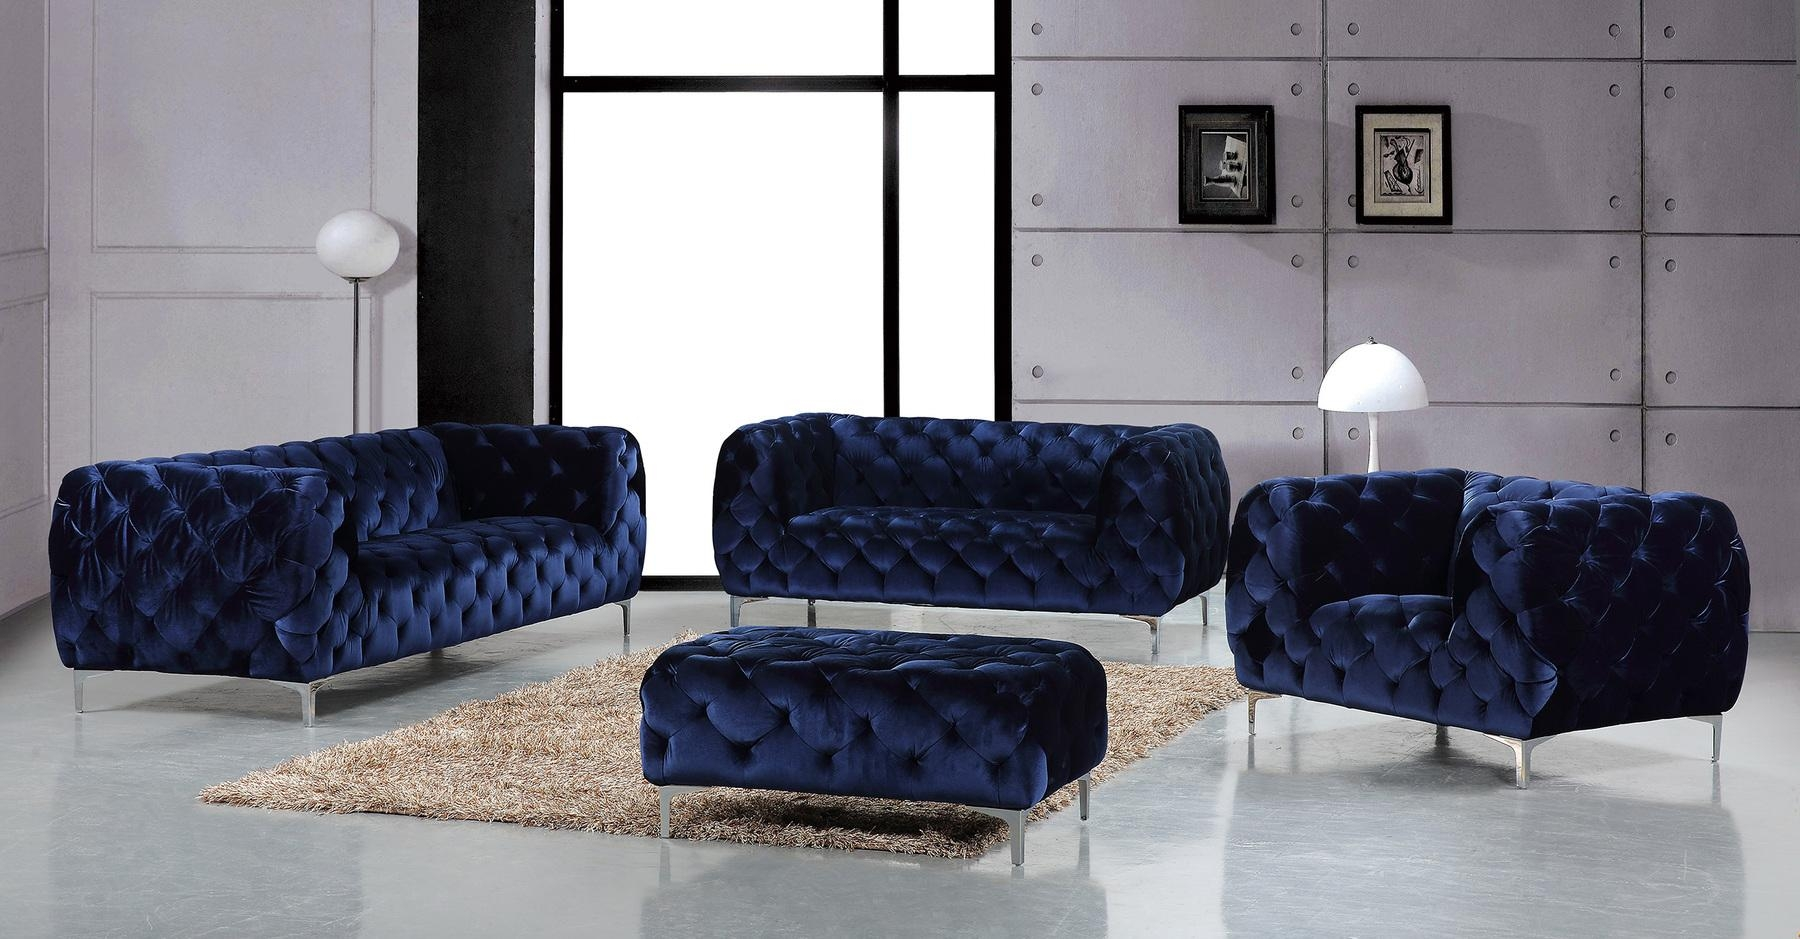 Mercer Navy Sofa 646 Meridian Furniture Fabric Sofas At Comfyco Pertaining To Black Velvet Sofas (Image 9 of 20)